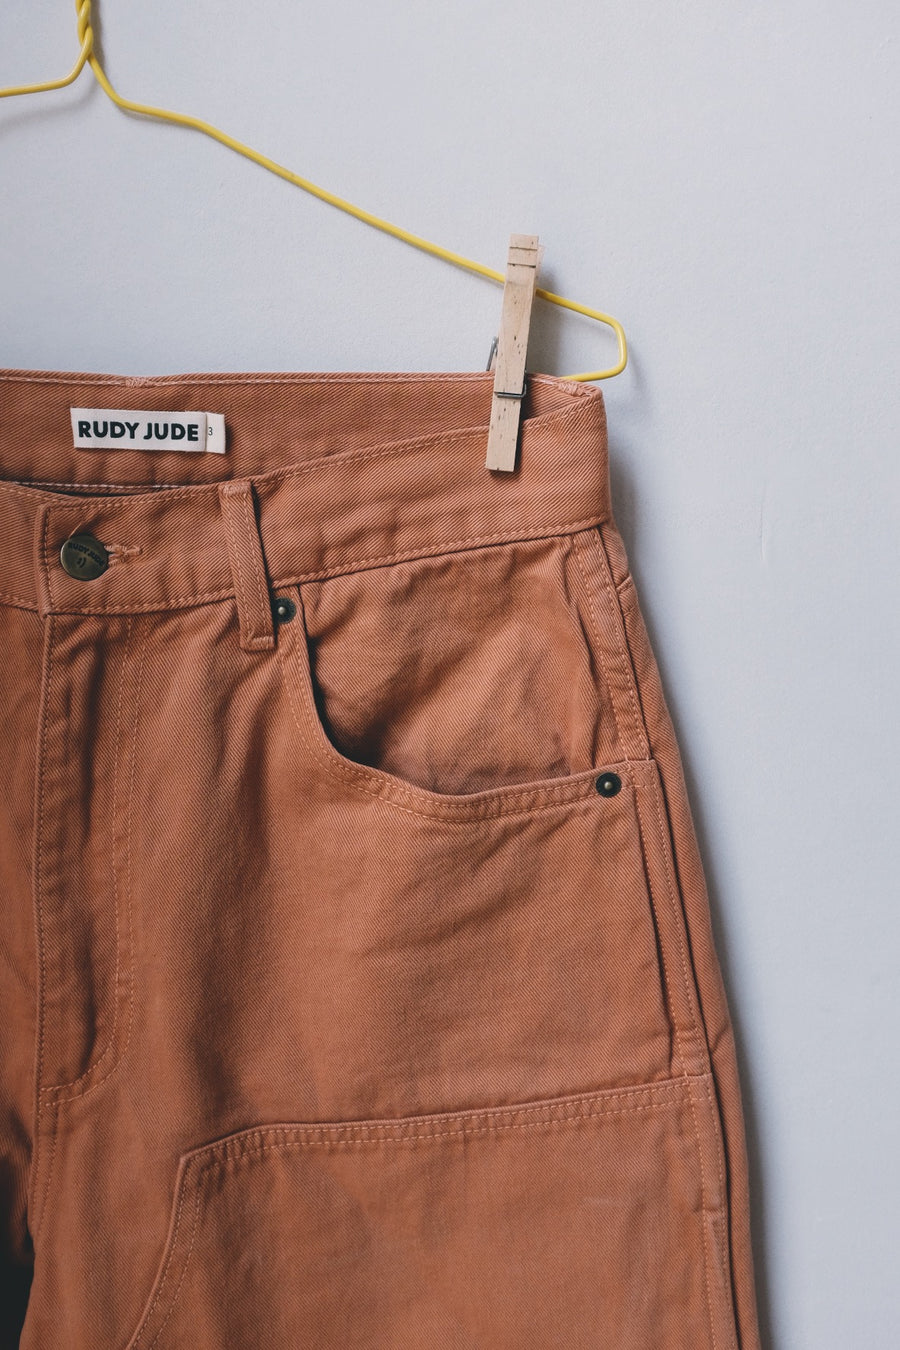 Toddler/Kid Utility Jean - Terra-Cotta